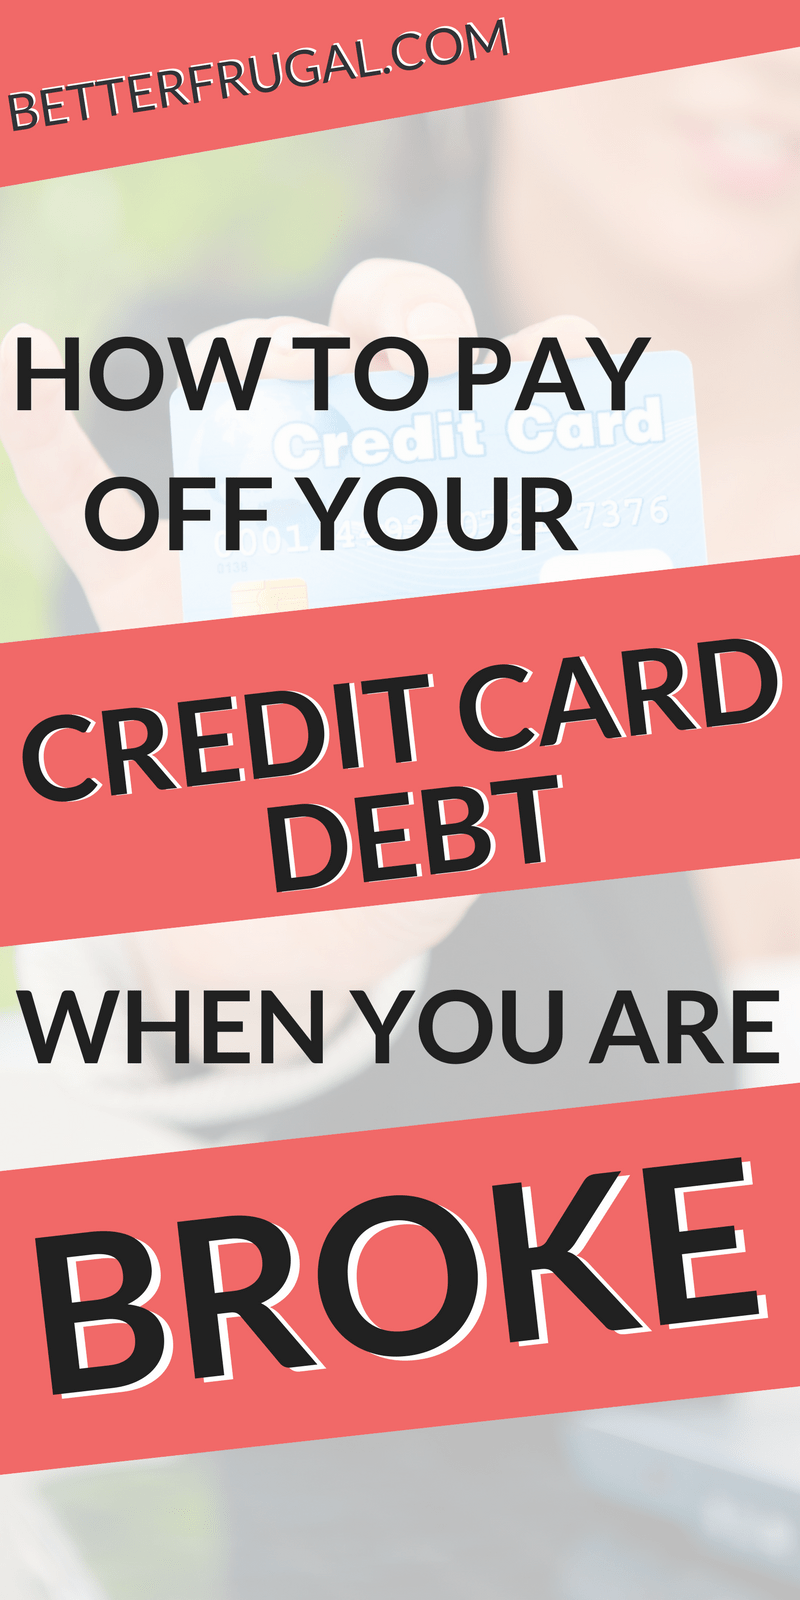 This May Just Be The Guide Youve Been Waiting For If You Feel Credit Card Debt